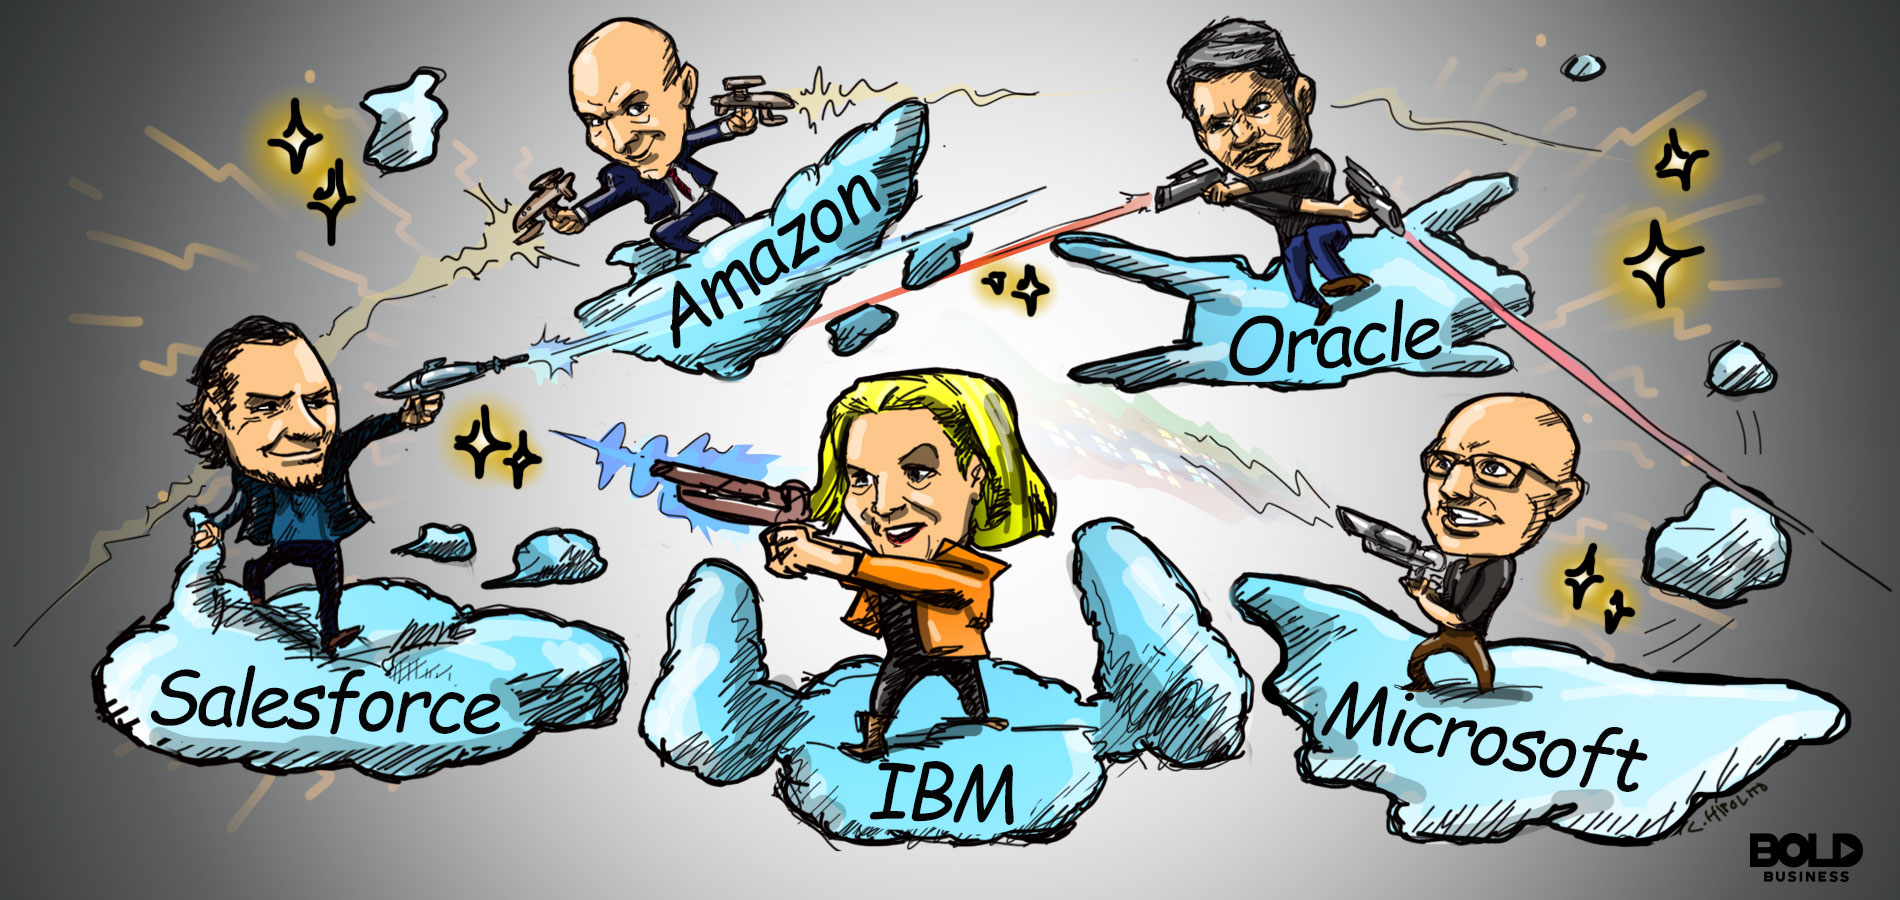 cartoon of leaders of Salesforce, IBM, Amazon, Microsoft and Oracle on clouds while shooting lasers at one another